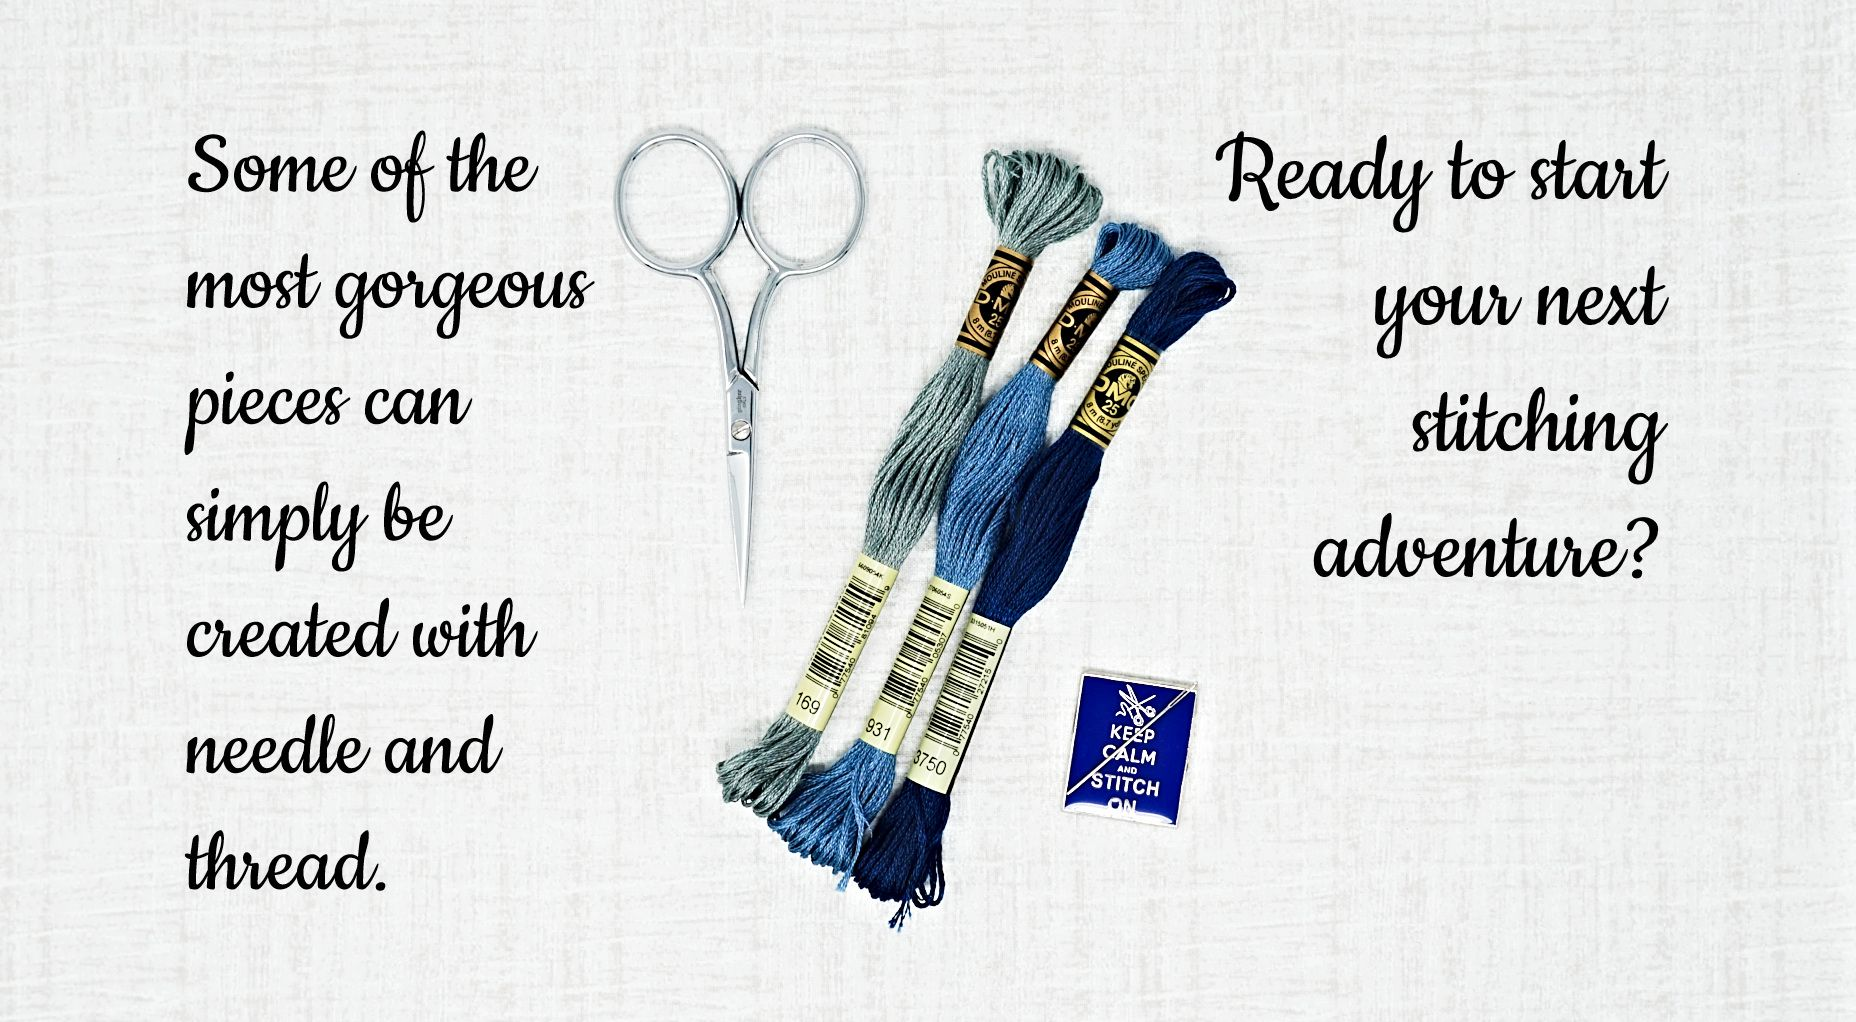 Start next cross stitch pieces with patterns and accessories found on the Thread Maniac Designs site